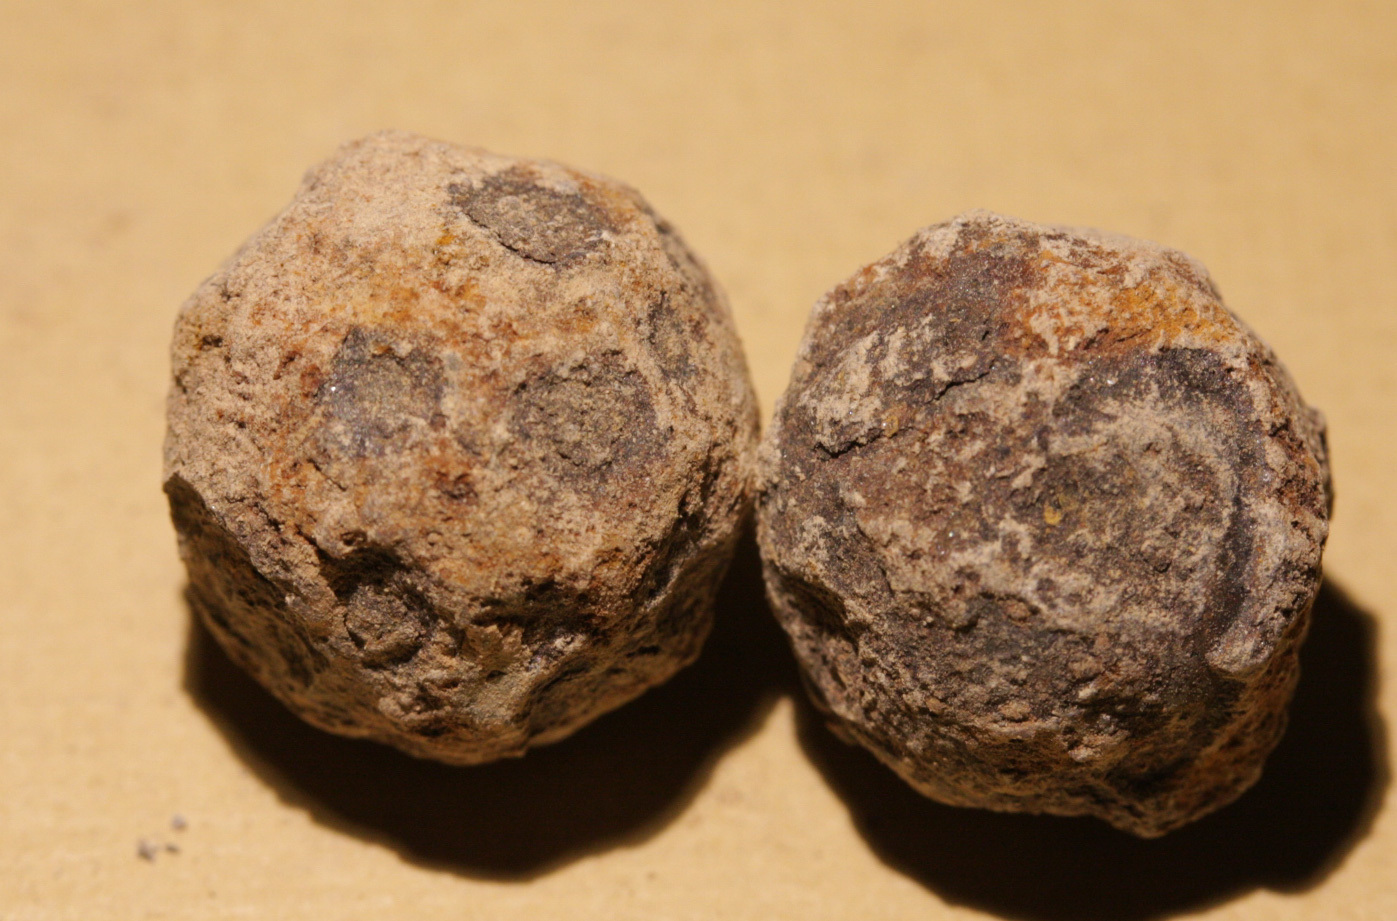 JUST ADDED ON 12/07 - THE BATTLE OF PORT REPUBLIC / JACKSON'S VALLEY CAMPAIGN - Two Iron Case Shot Balls WB-PR18